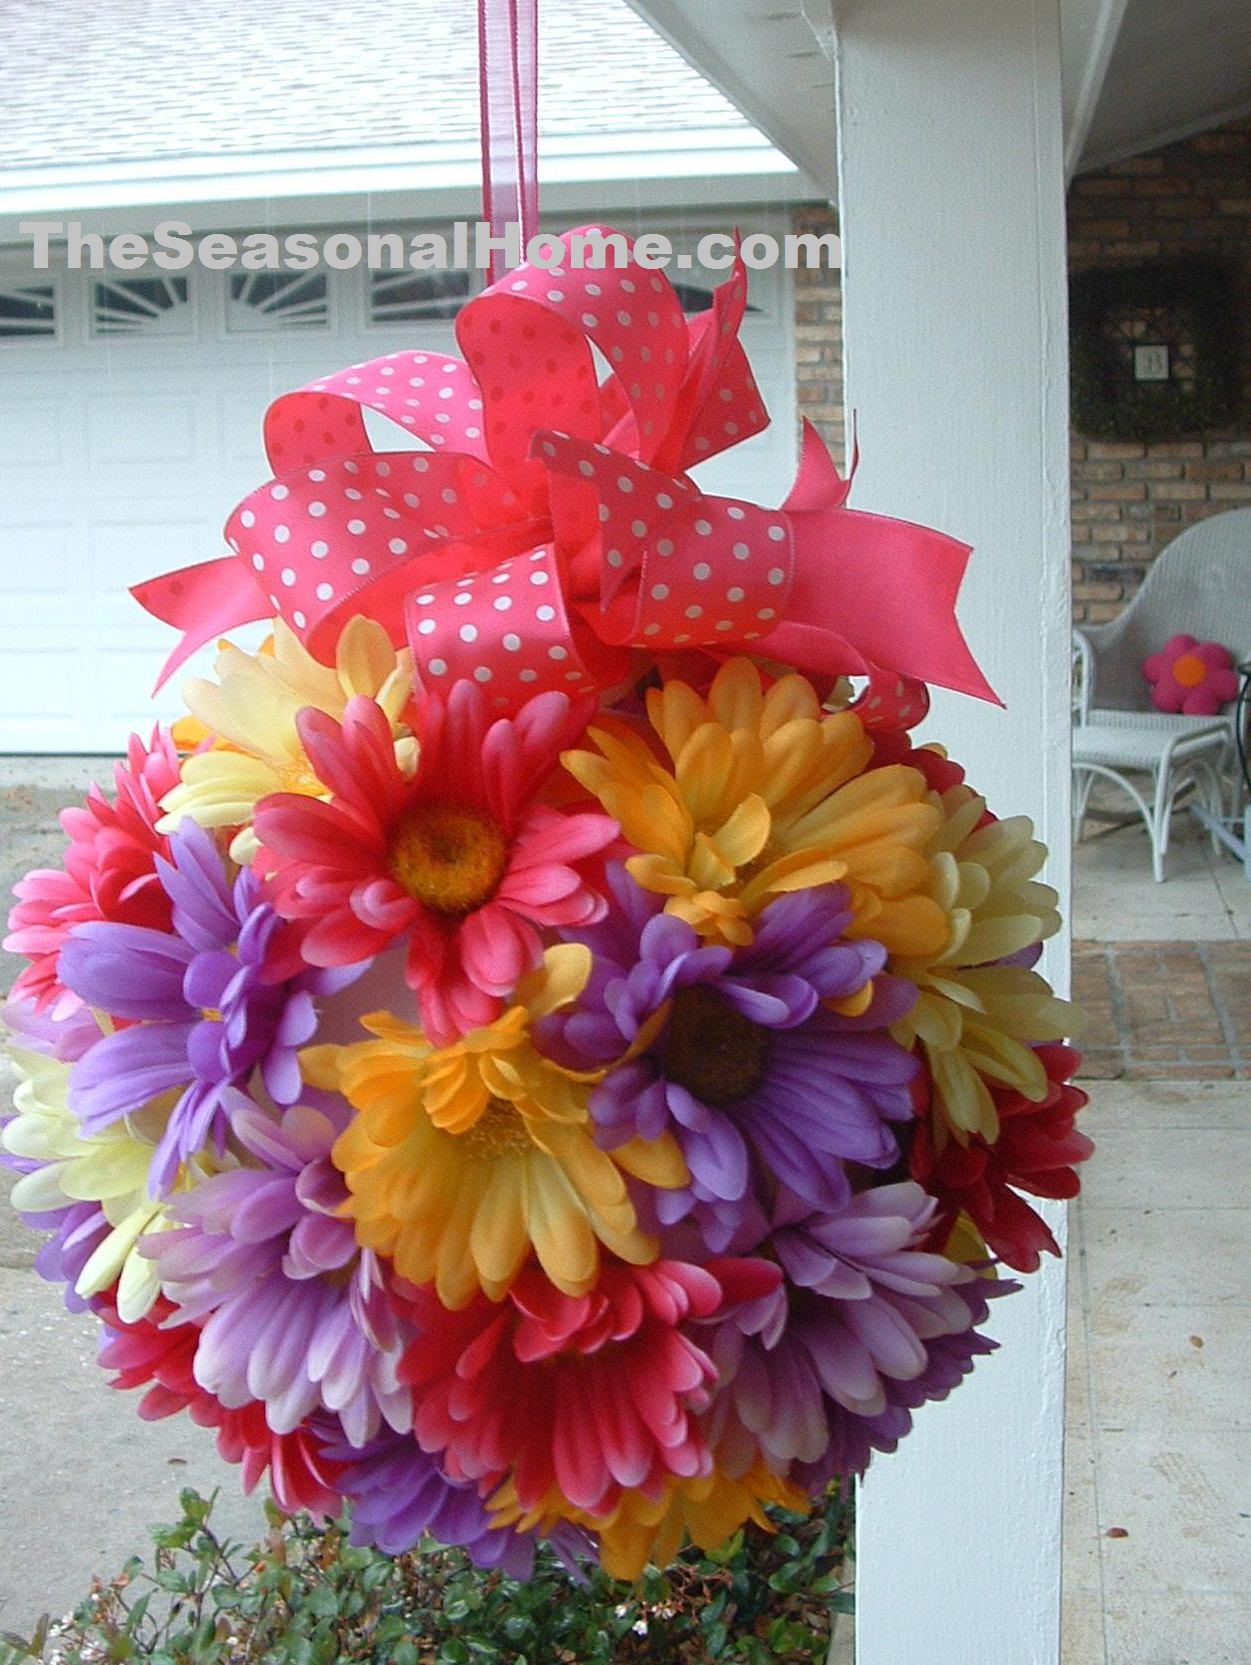 Spring Burst O Flowers Ball For Hanging 171 The Seasonal